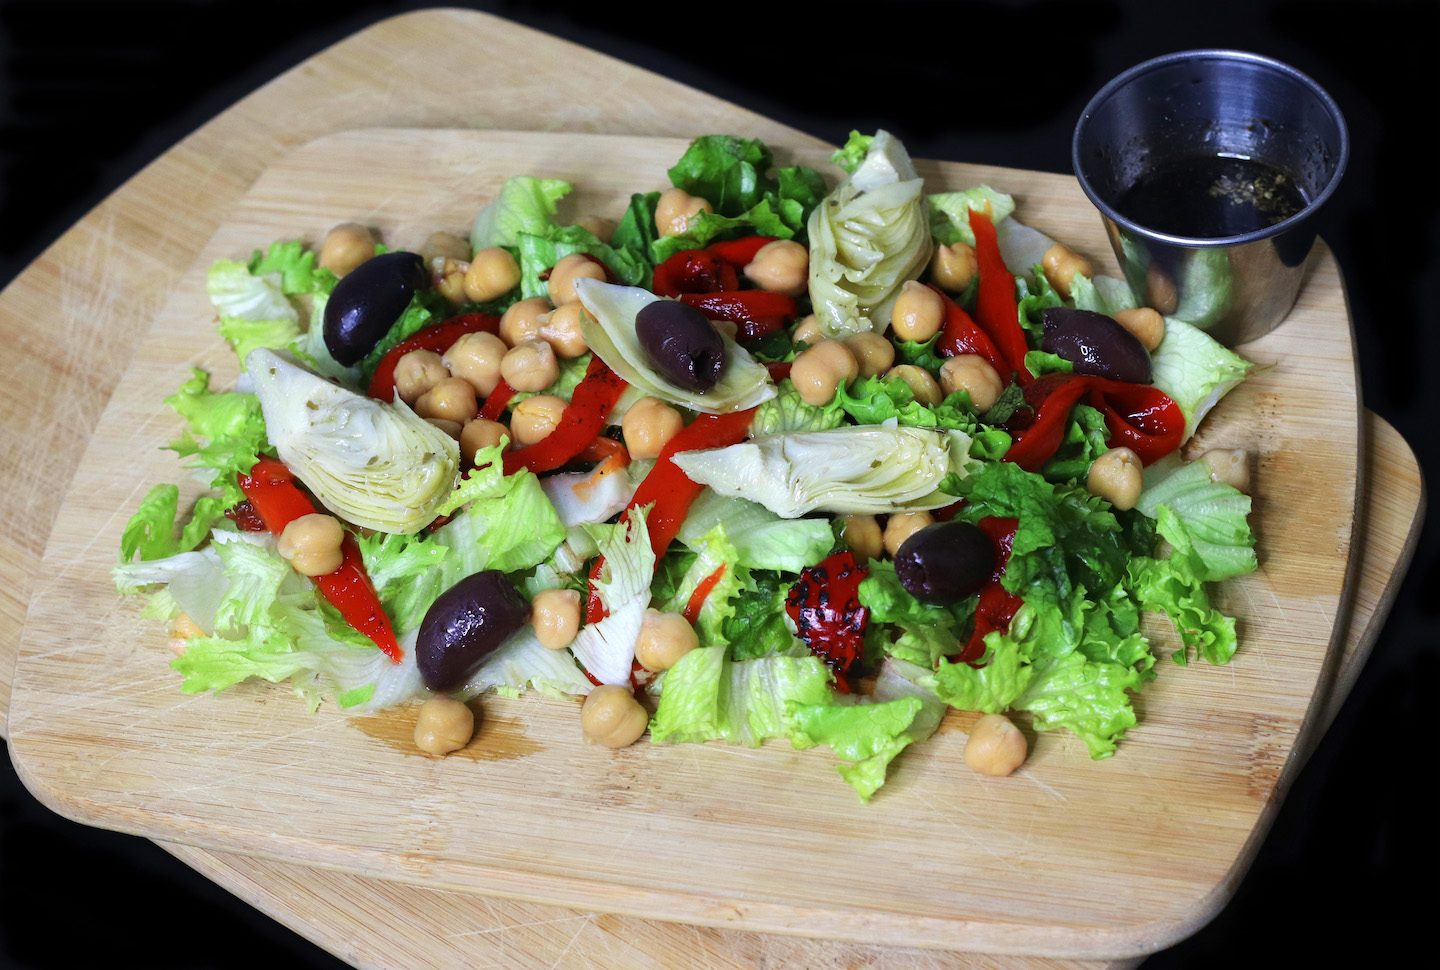 Mediterranean Chickpea Salad With Lemon Balsamic Vinaigrette